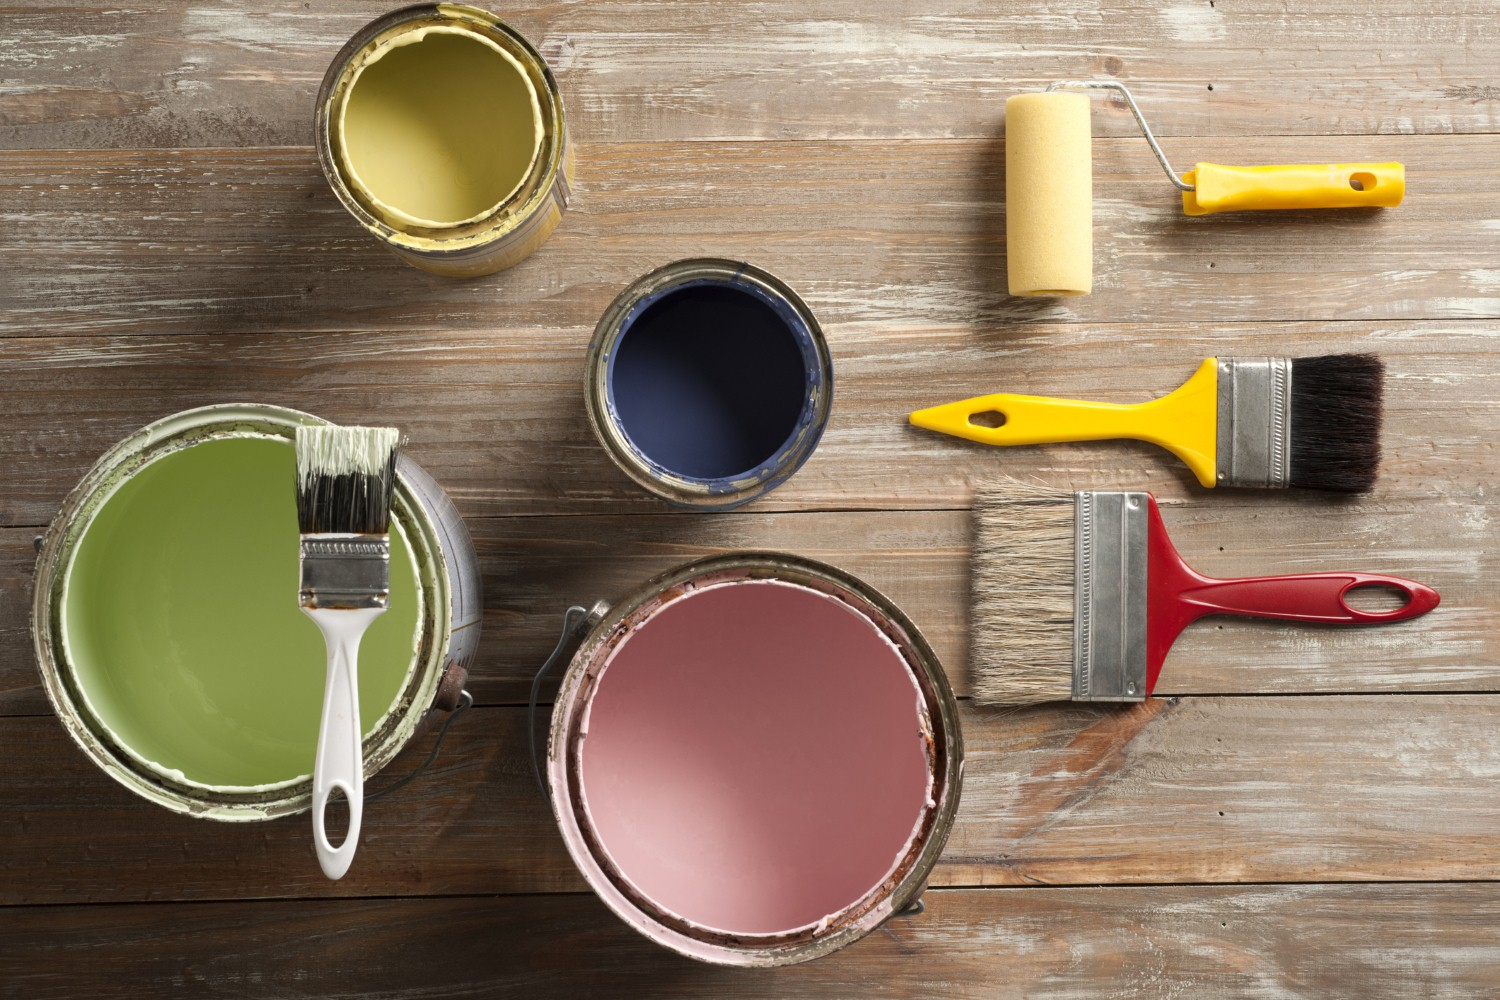 Homeowners believe redecoration and renovation improves value [Photo: iStock/TinaFields]